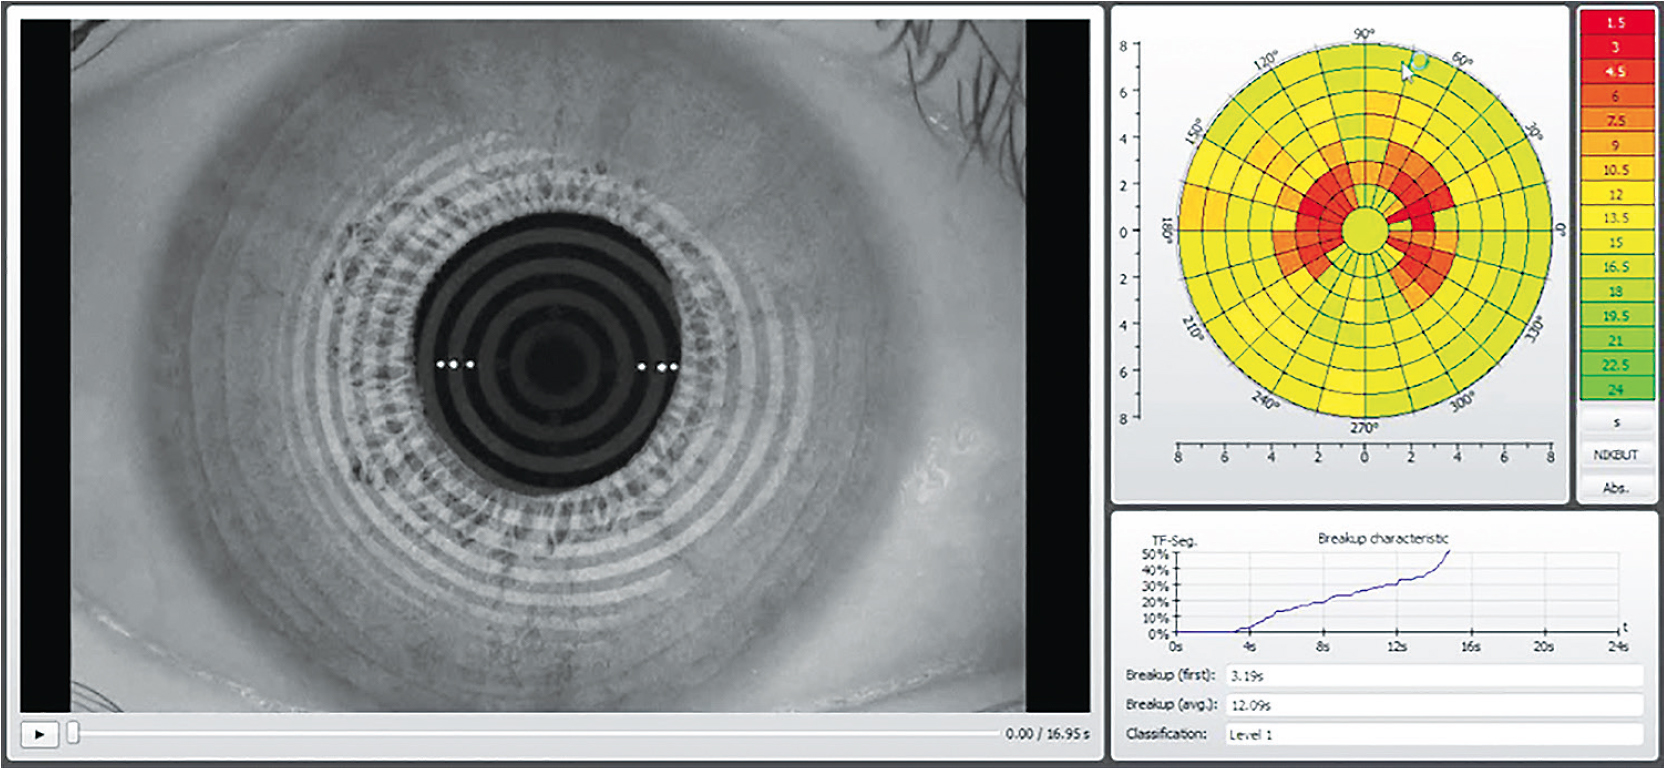 Figure 1. Non-invasive tear breakup analysis. This can be performed with and without the contact lens in place.